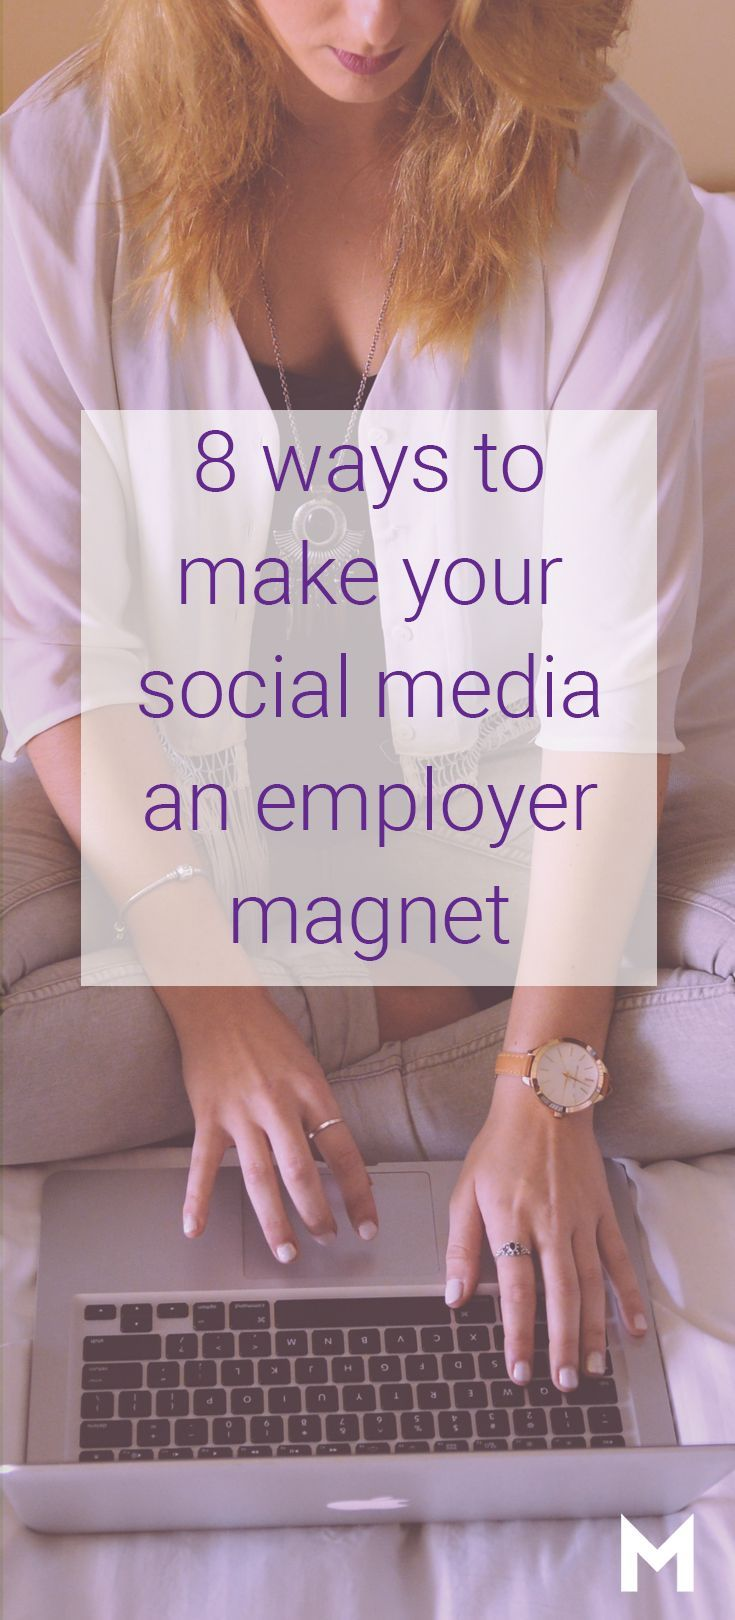 monster resignation letter%0A   ways to make your social media profile an employer magnet